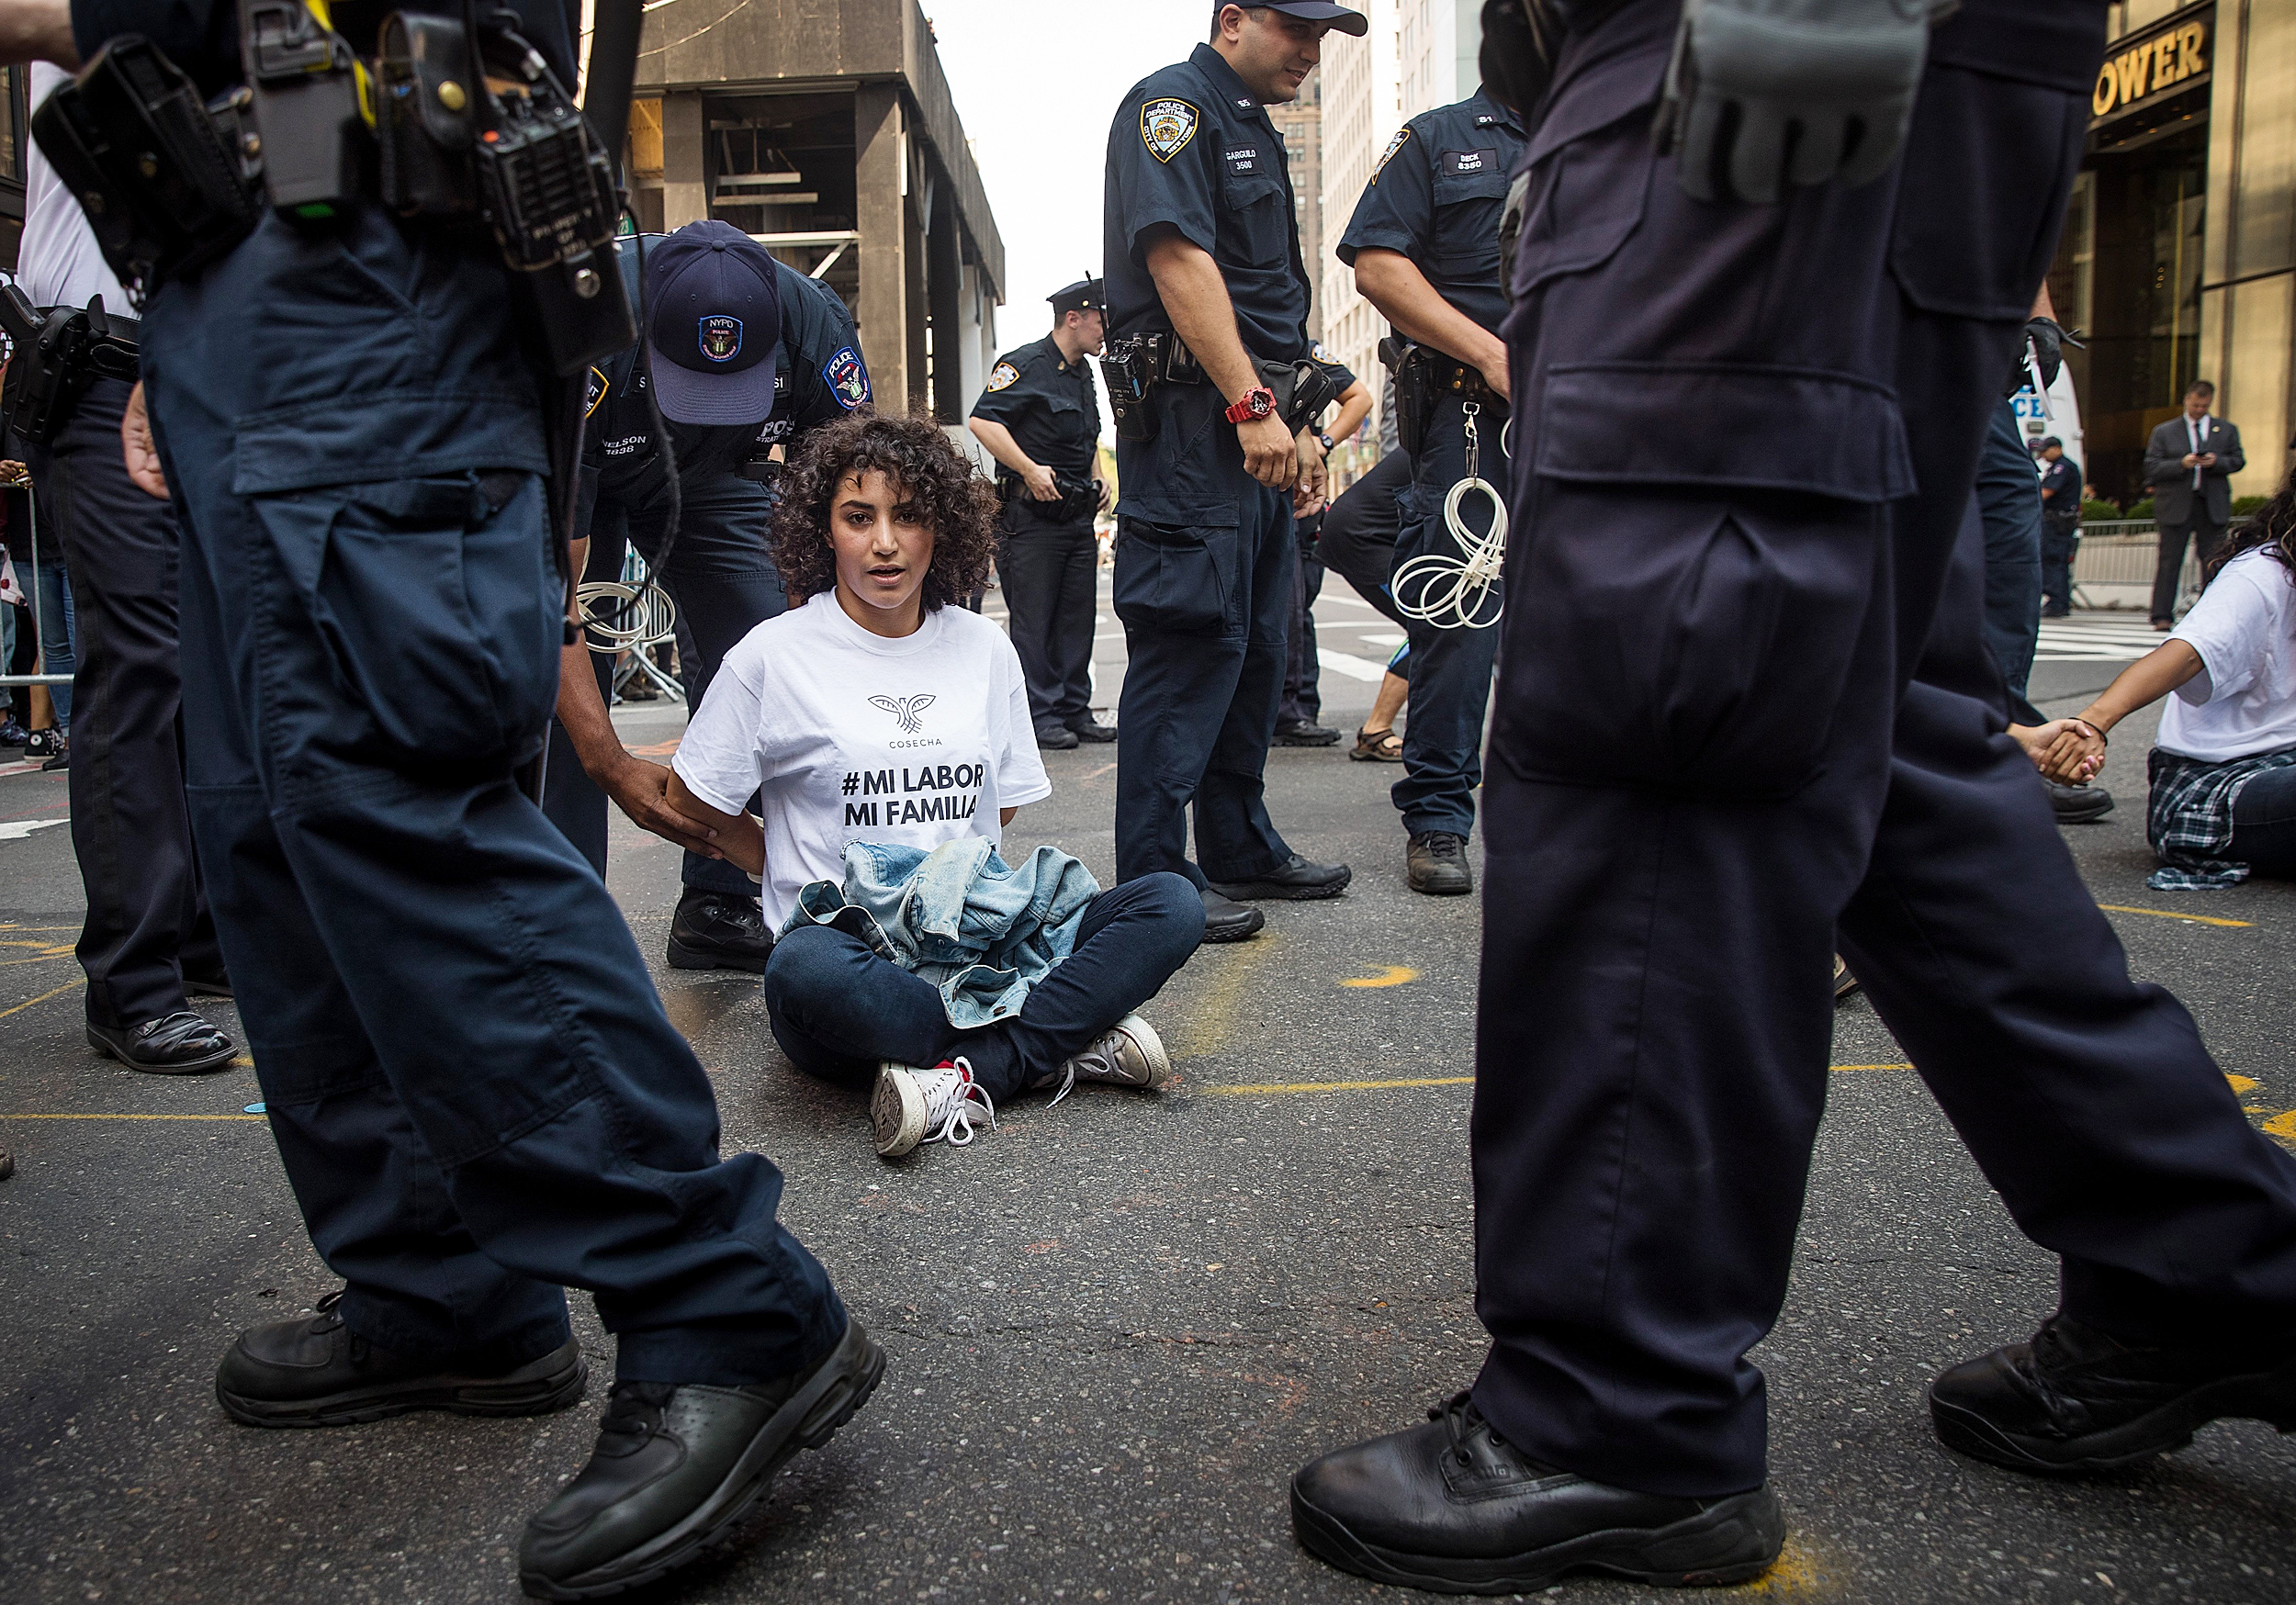 Image: Immigration activists are arrested as they protest the Trump administration's decision on DACA